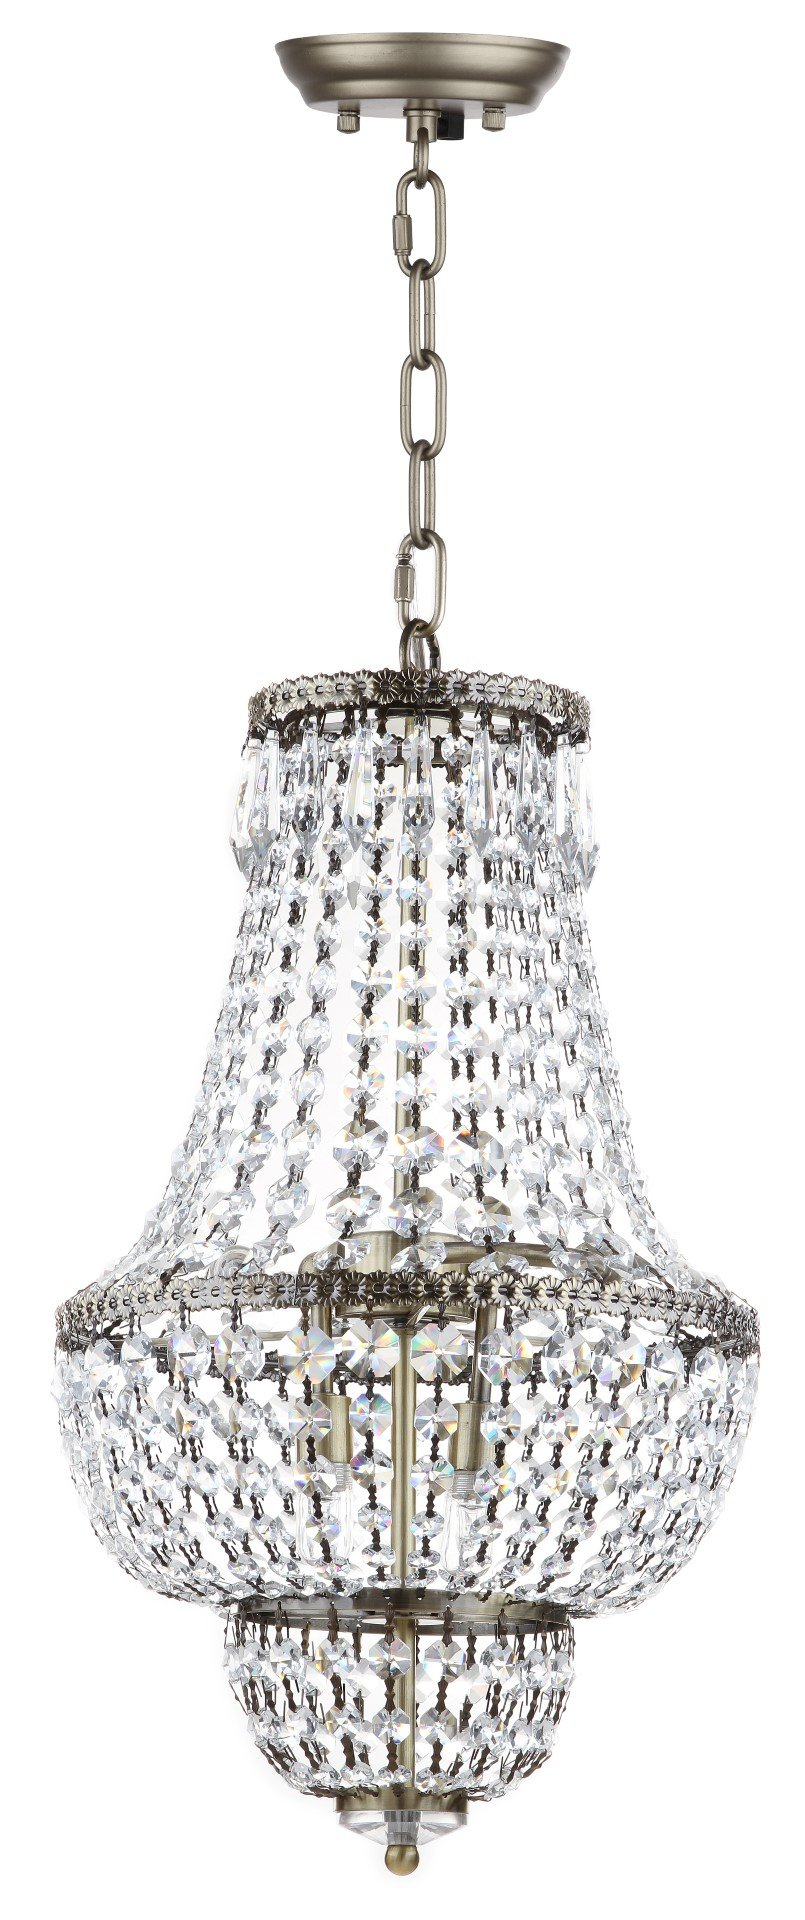 Rutland 4-Light Empire Chandelier & Reviews | Joss & Main inside Spokane 1-Light Single Urn Pendants (Image 24 of 30)